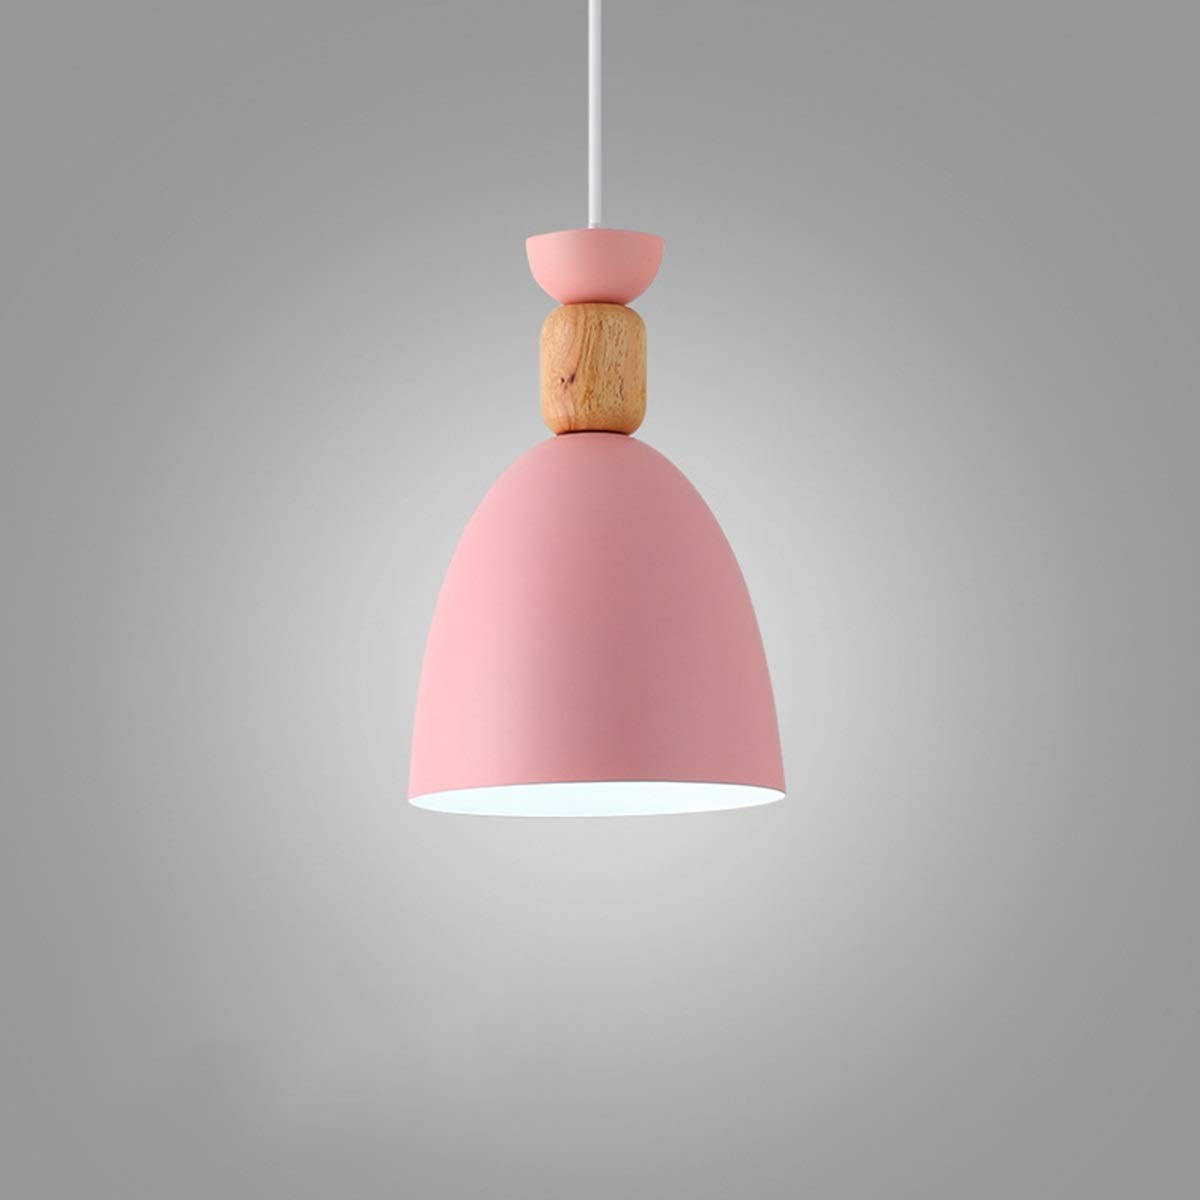 NANGE Macaron Chandelier, Wood Metal Suction Cups Pendant Lighting,Restaurant Home Dining Table Hanging Lamp,E27,110-220V(Without Light Source) (Color : Pink, Size : AC 220V)